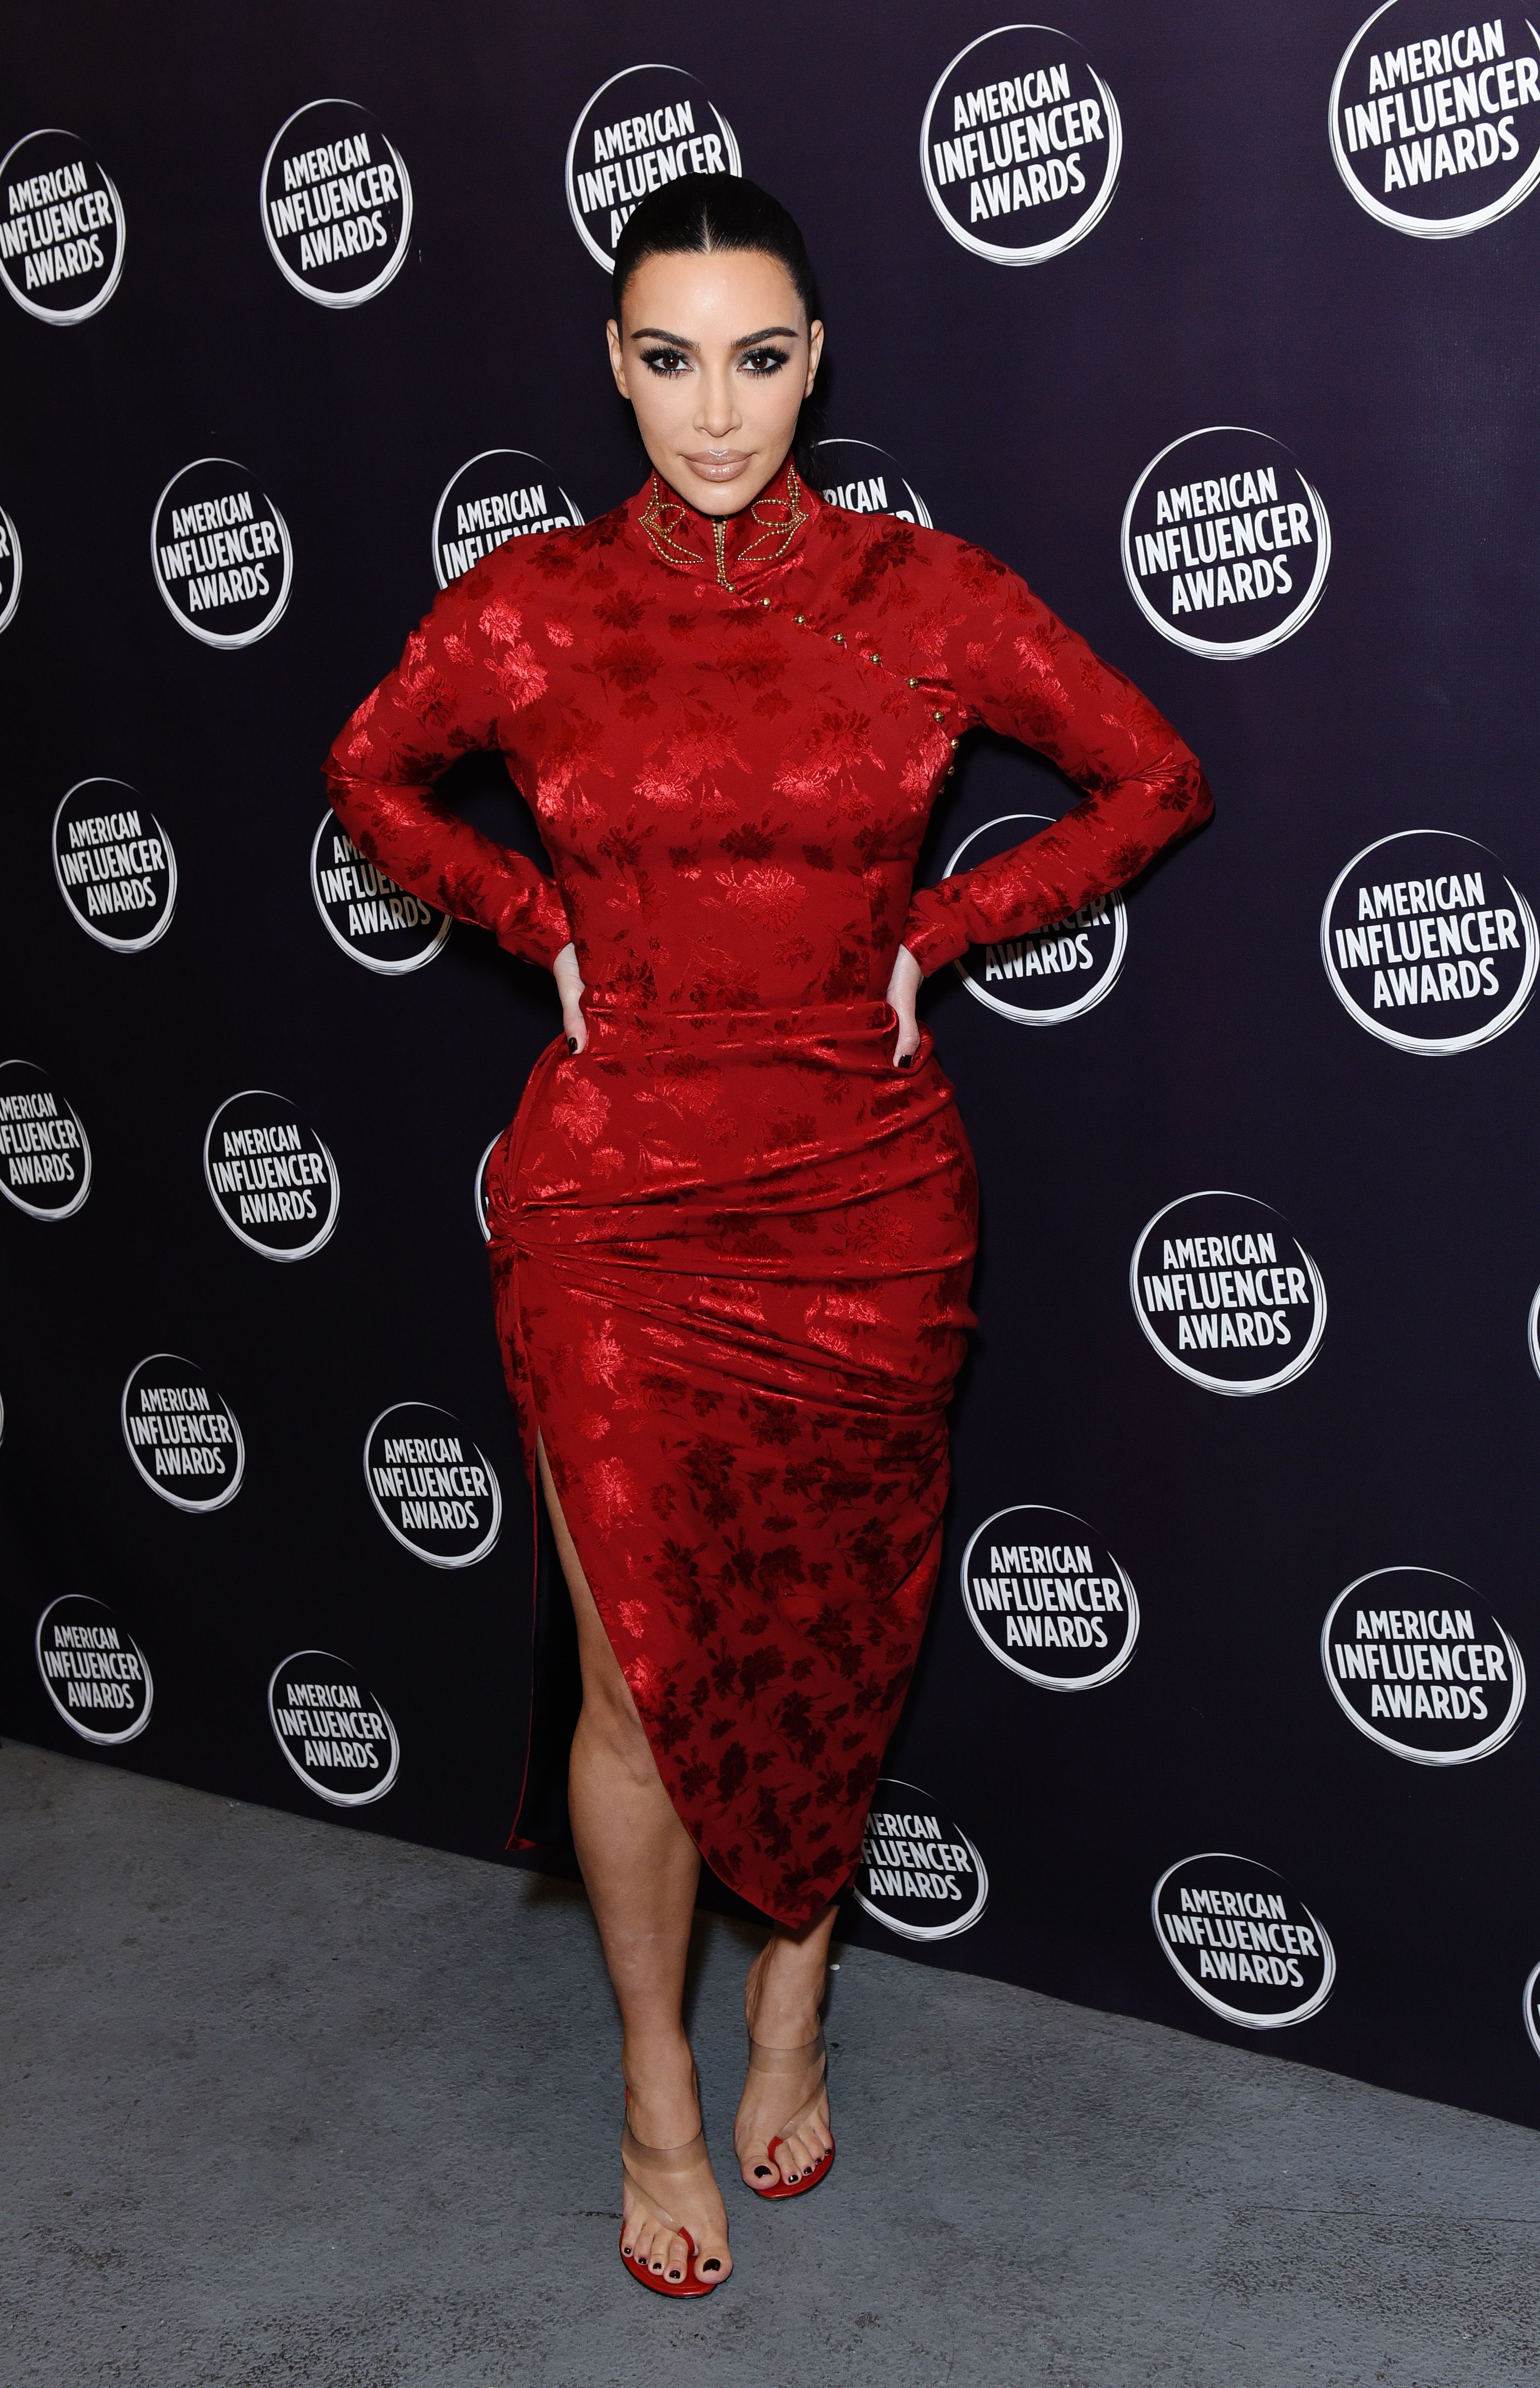 Kim Kardashian at the 2nd Annual American Influencer Awards / Getty Images